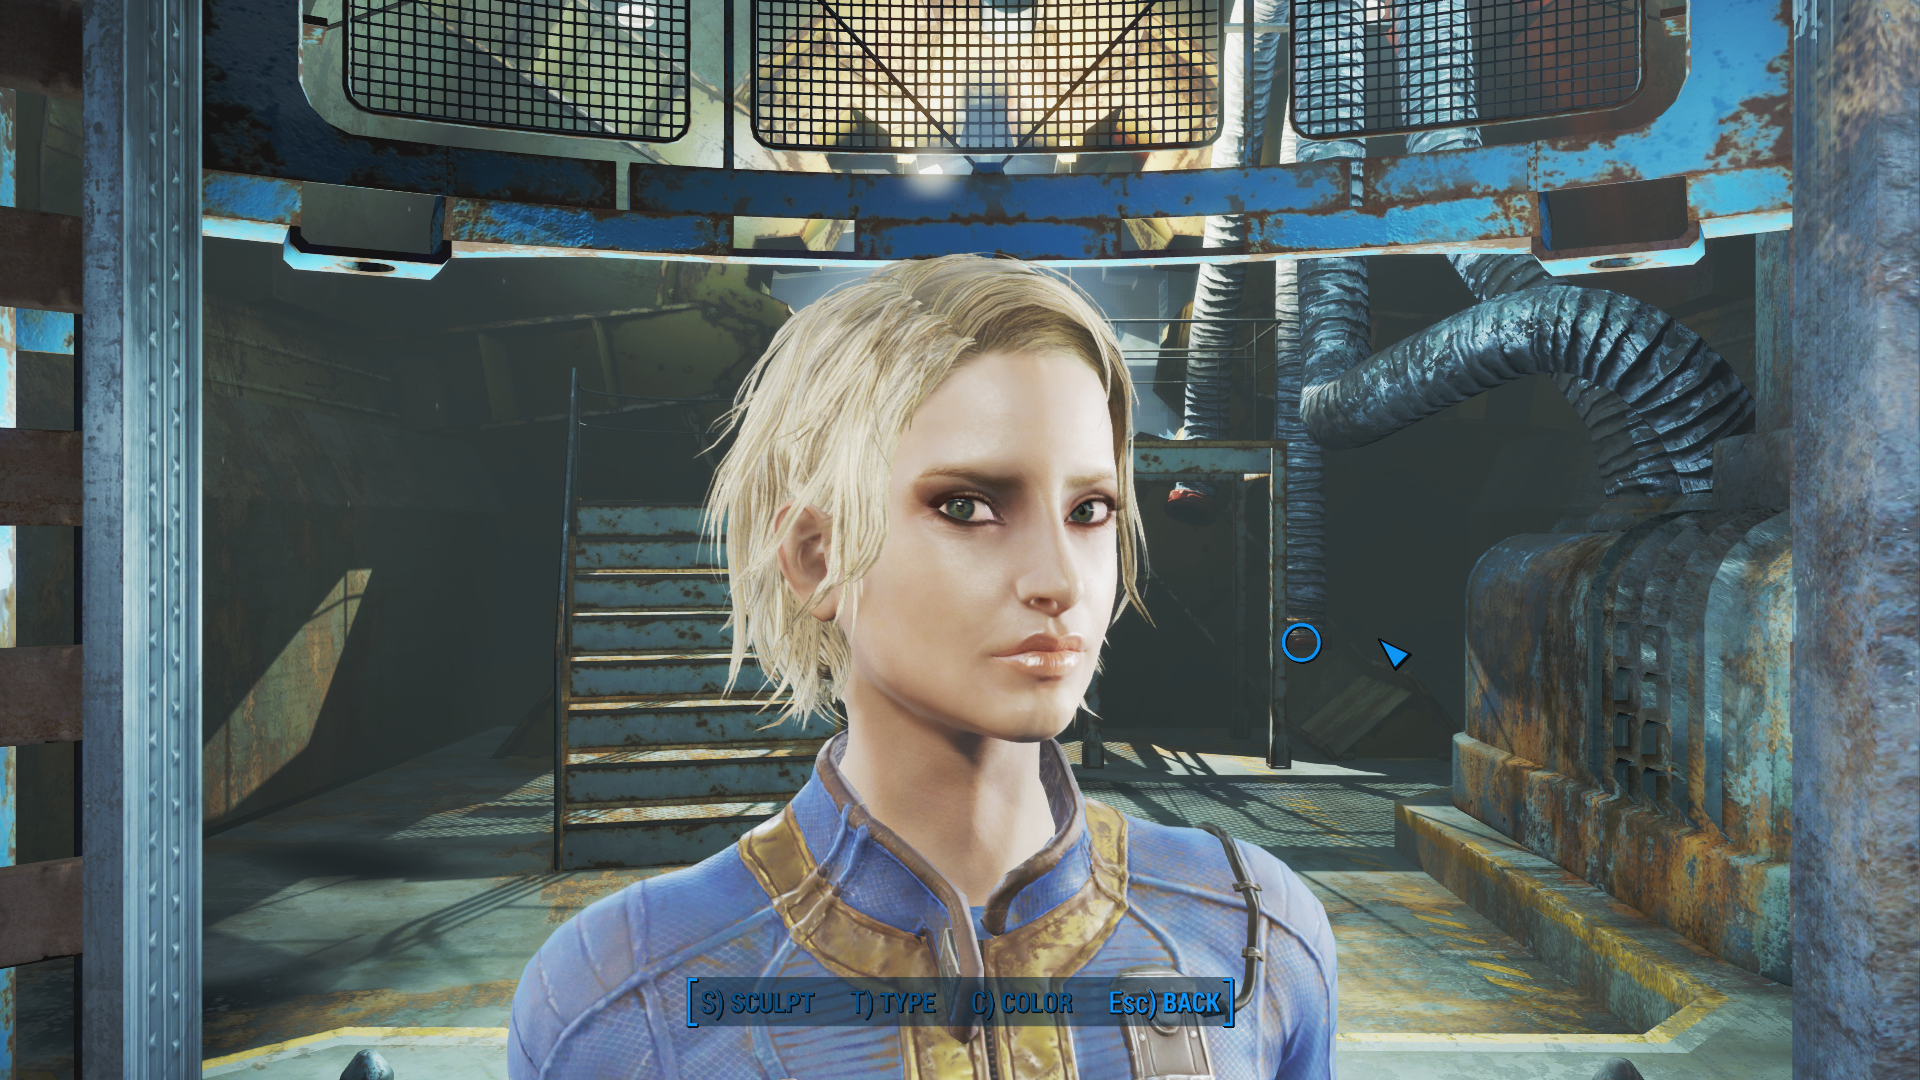 Show us your Fallout 4 character here   NeoGAF